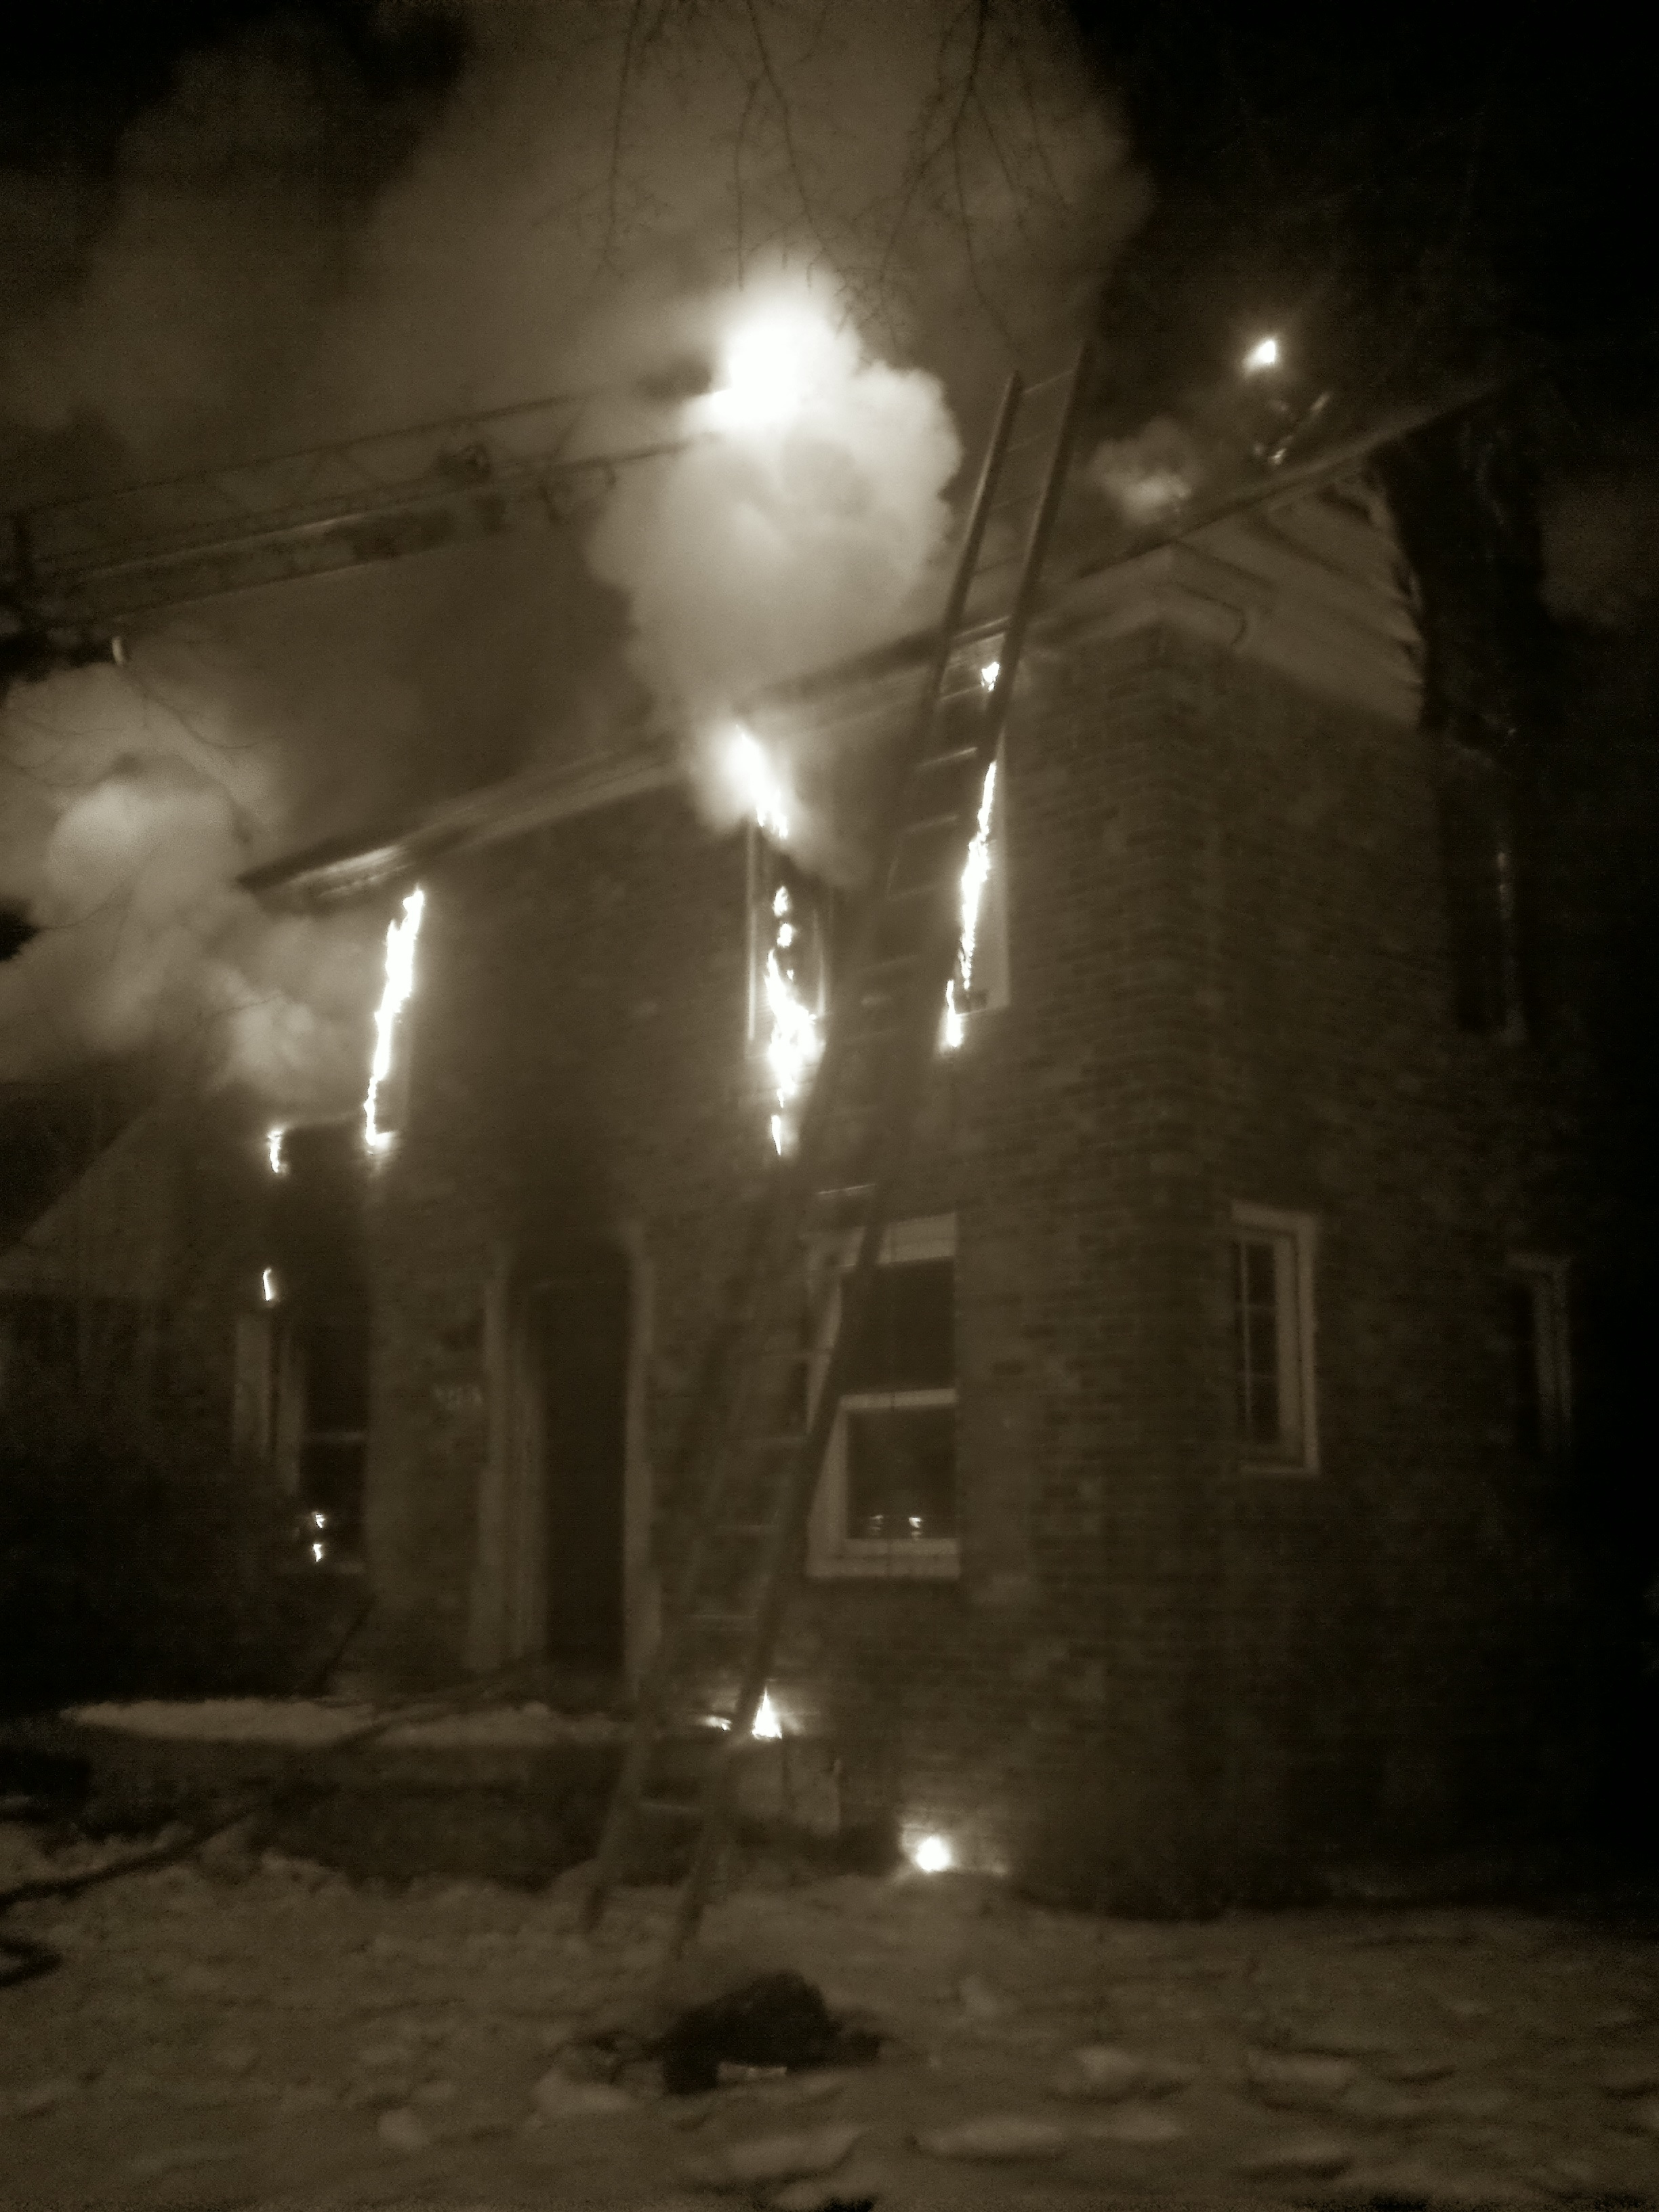 Second Story Box Alarm Detroit Michigan BURN Film